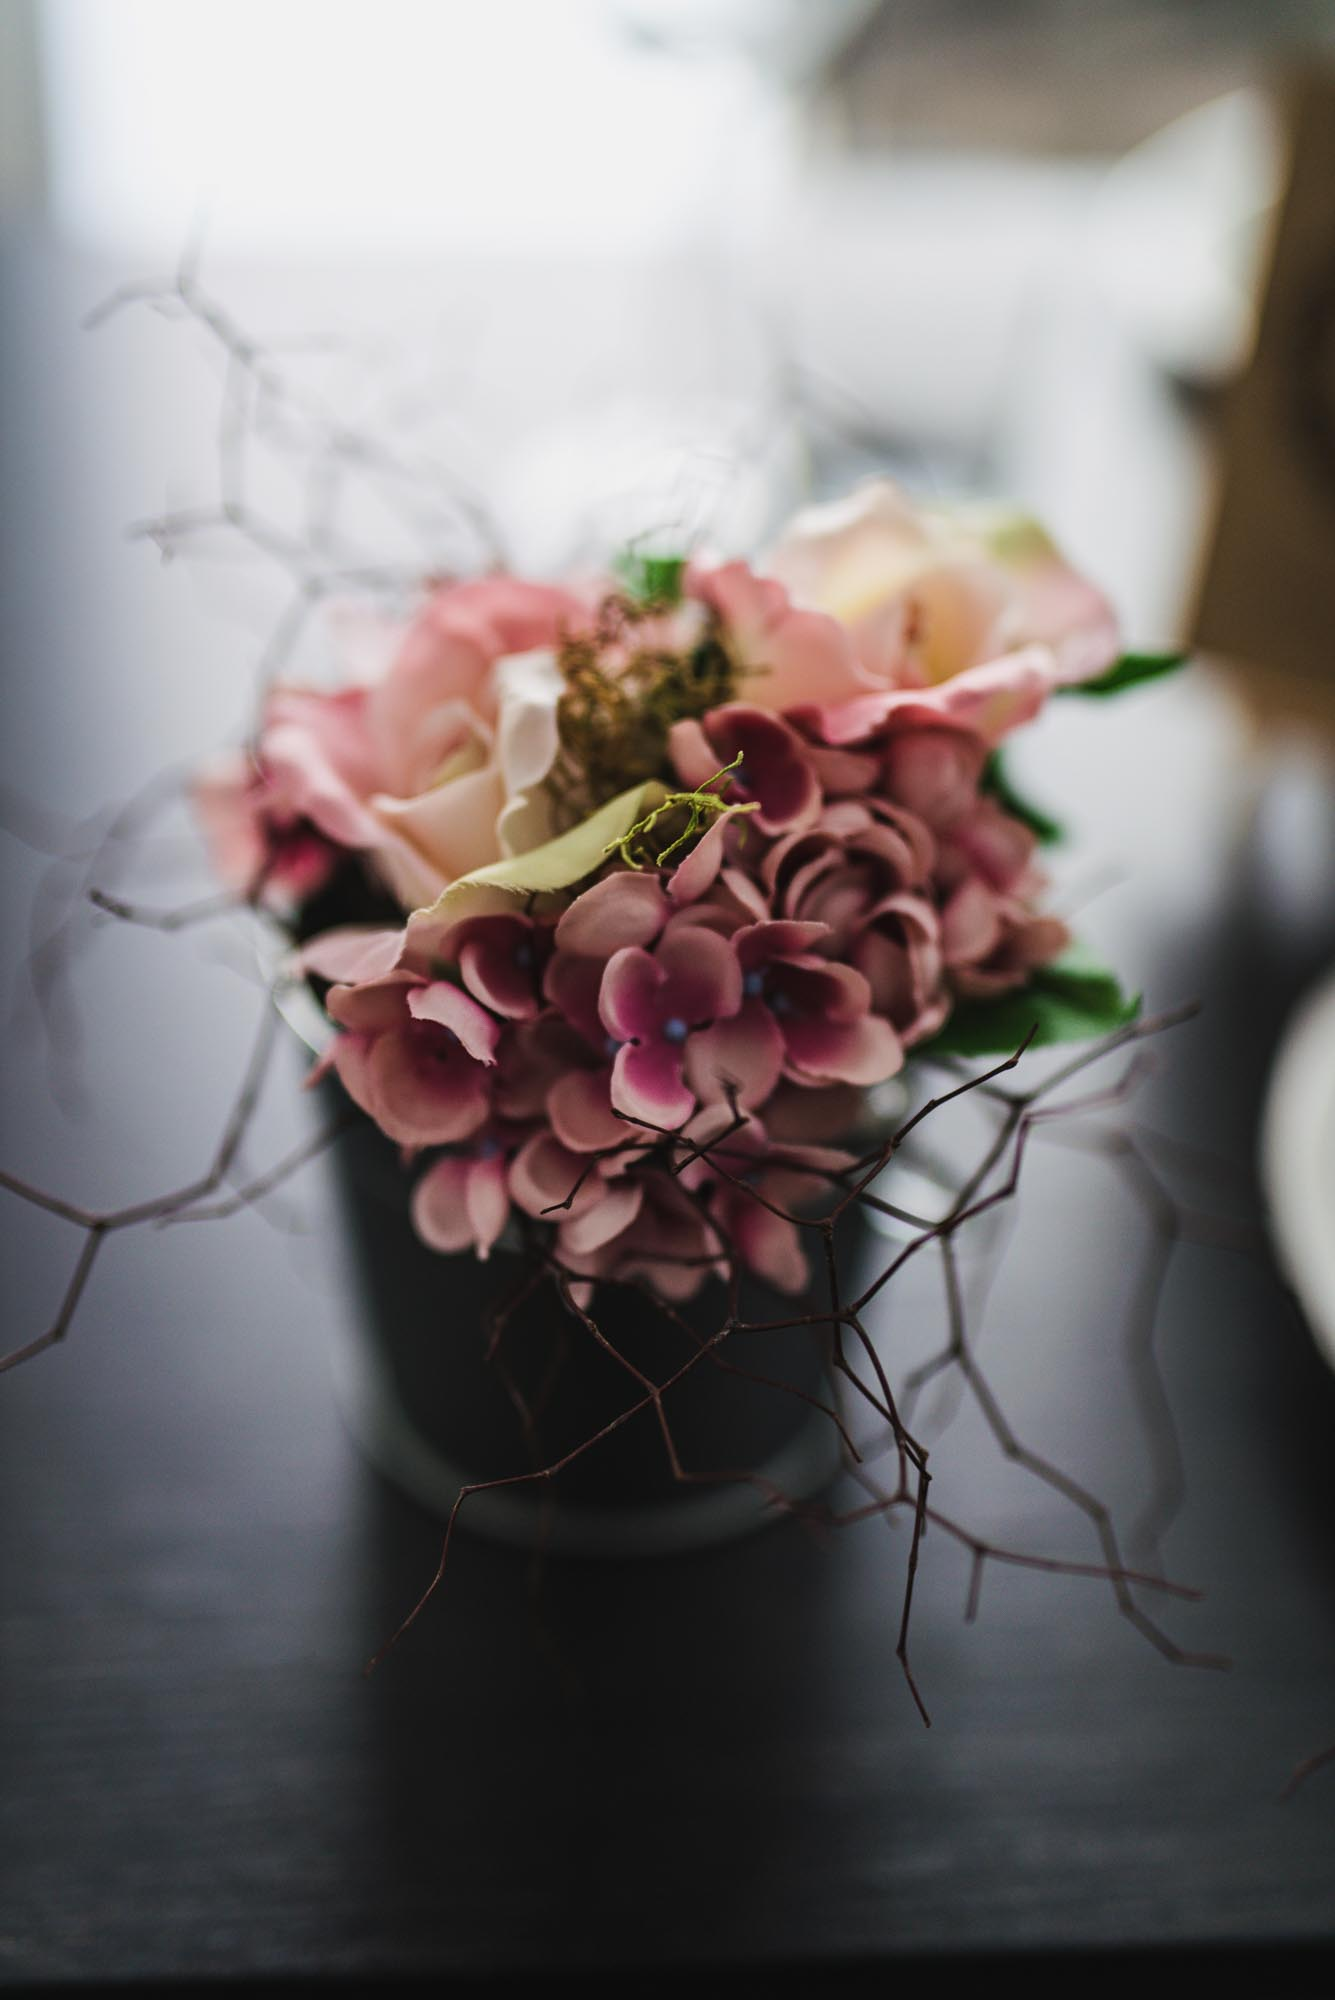 Blog christchurch event stylist florist benefits of using artificial flowers in the workplace mightylinksfo